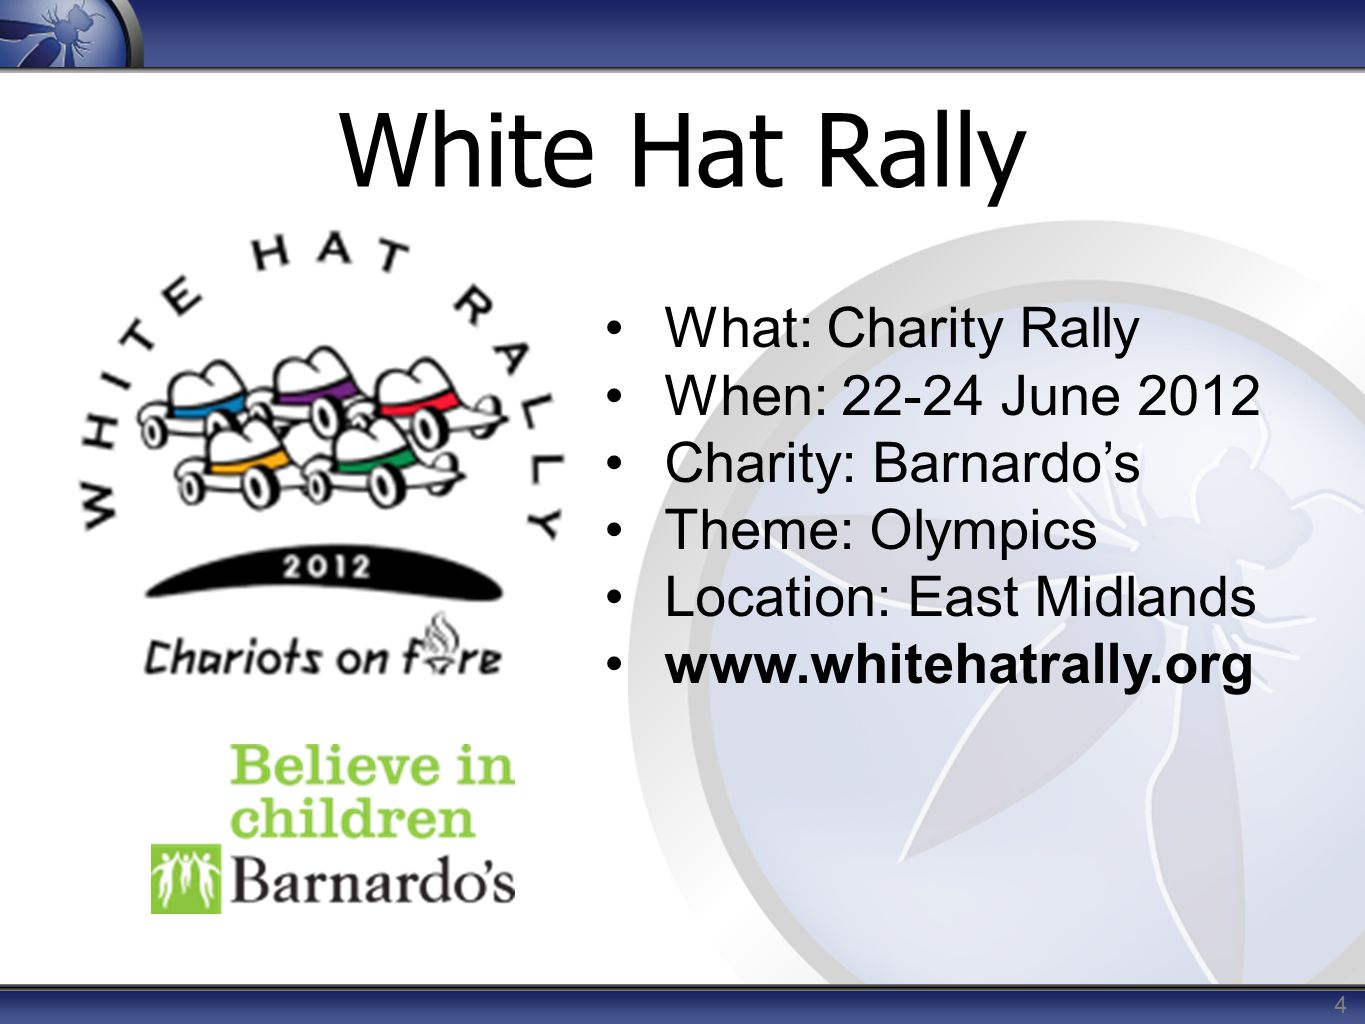 White Hat Rally 4 What: Charity Rally When: 22-24 June 2012 Charity: Barnardo's Theme: Olympics Location: East Midlands www.whitehatrally.org